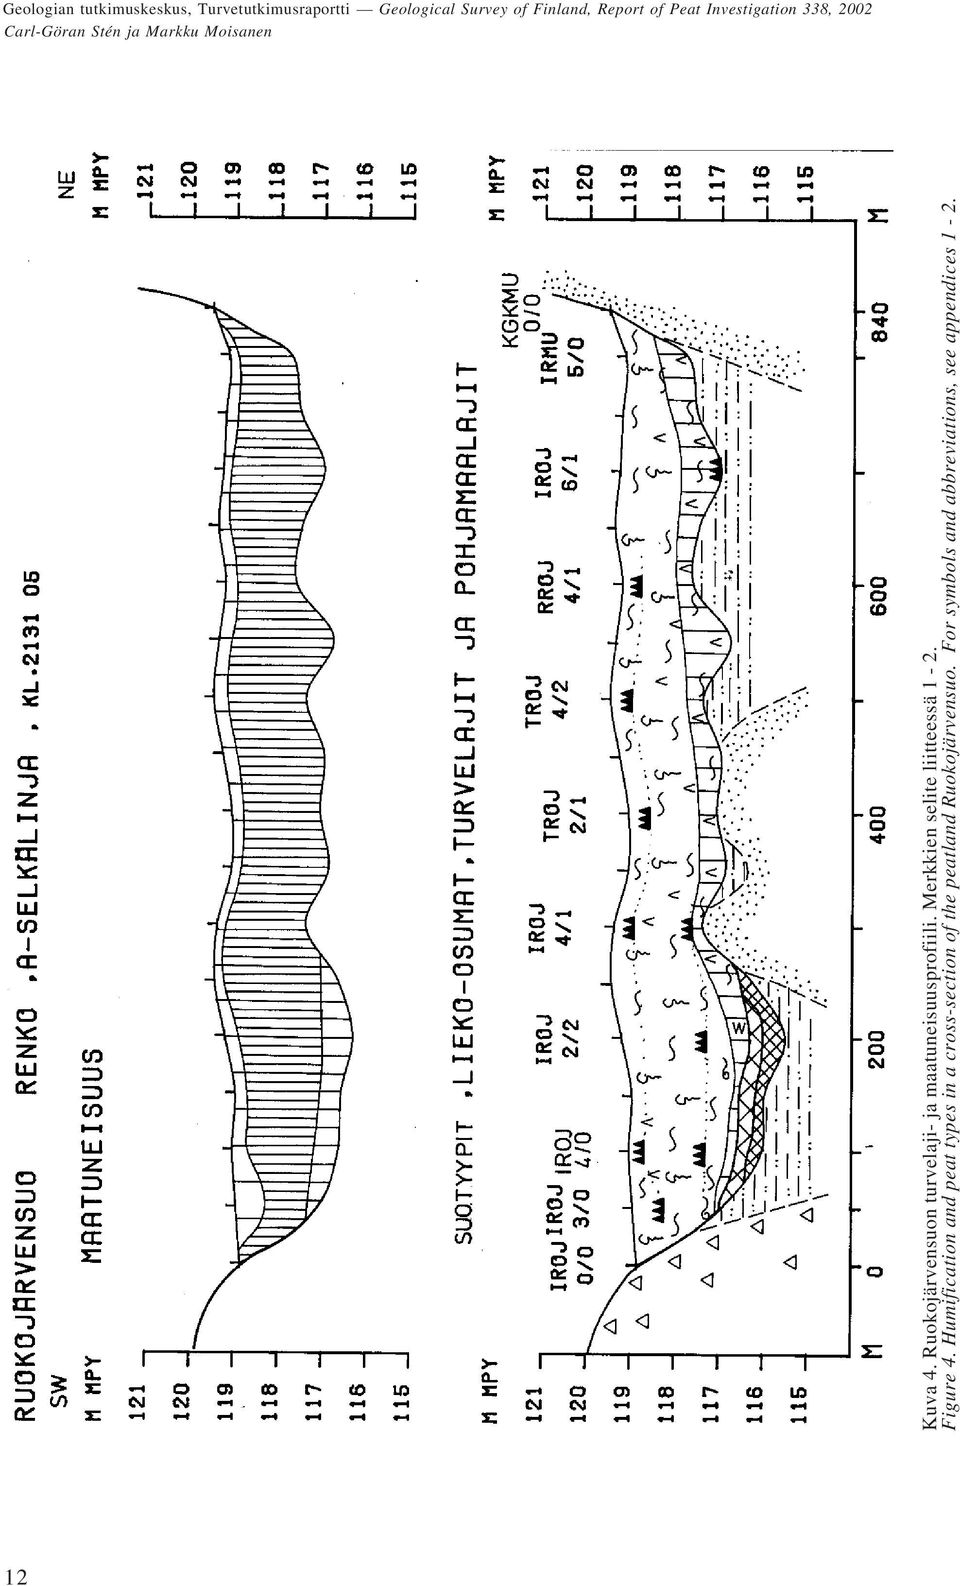 Humification and peat types in a cross-section of the